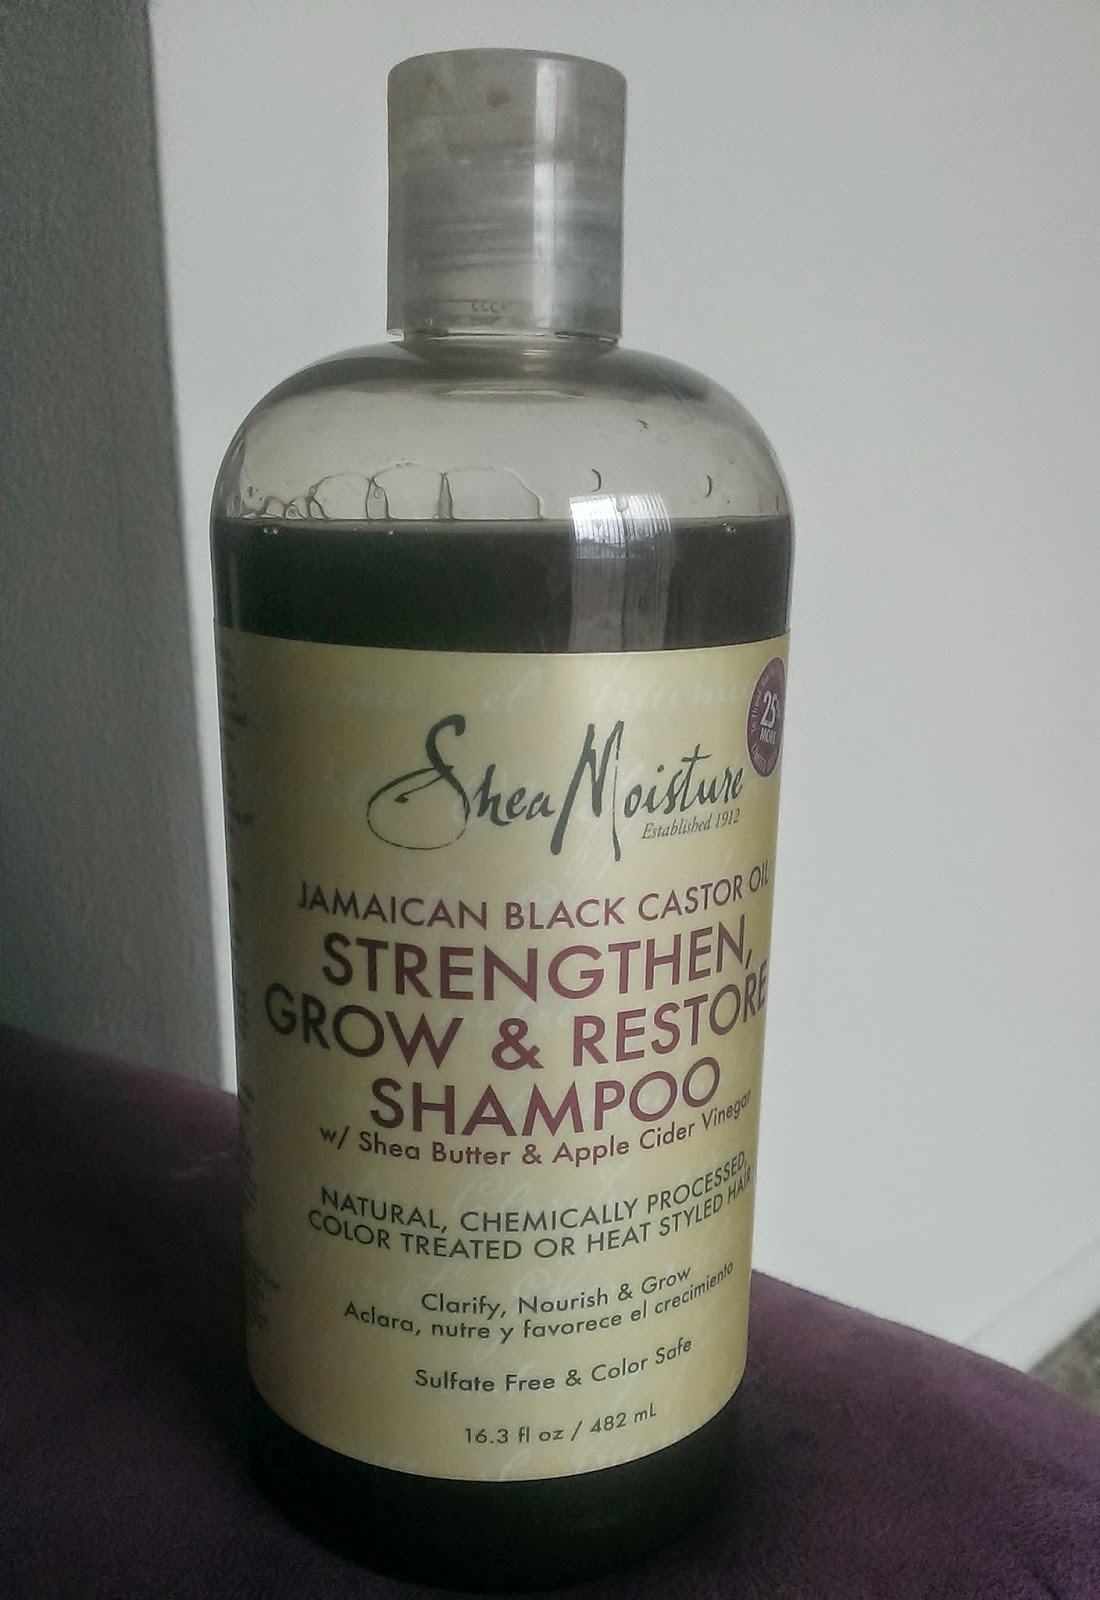 Theme of the day jamaican black castor oil for hair growth - Shea Moisture Jamaican Black Castor Oil Shampoo